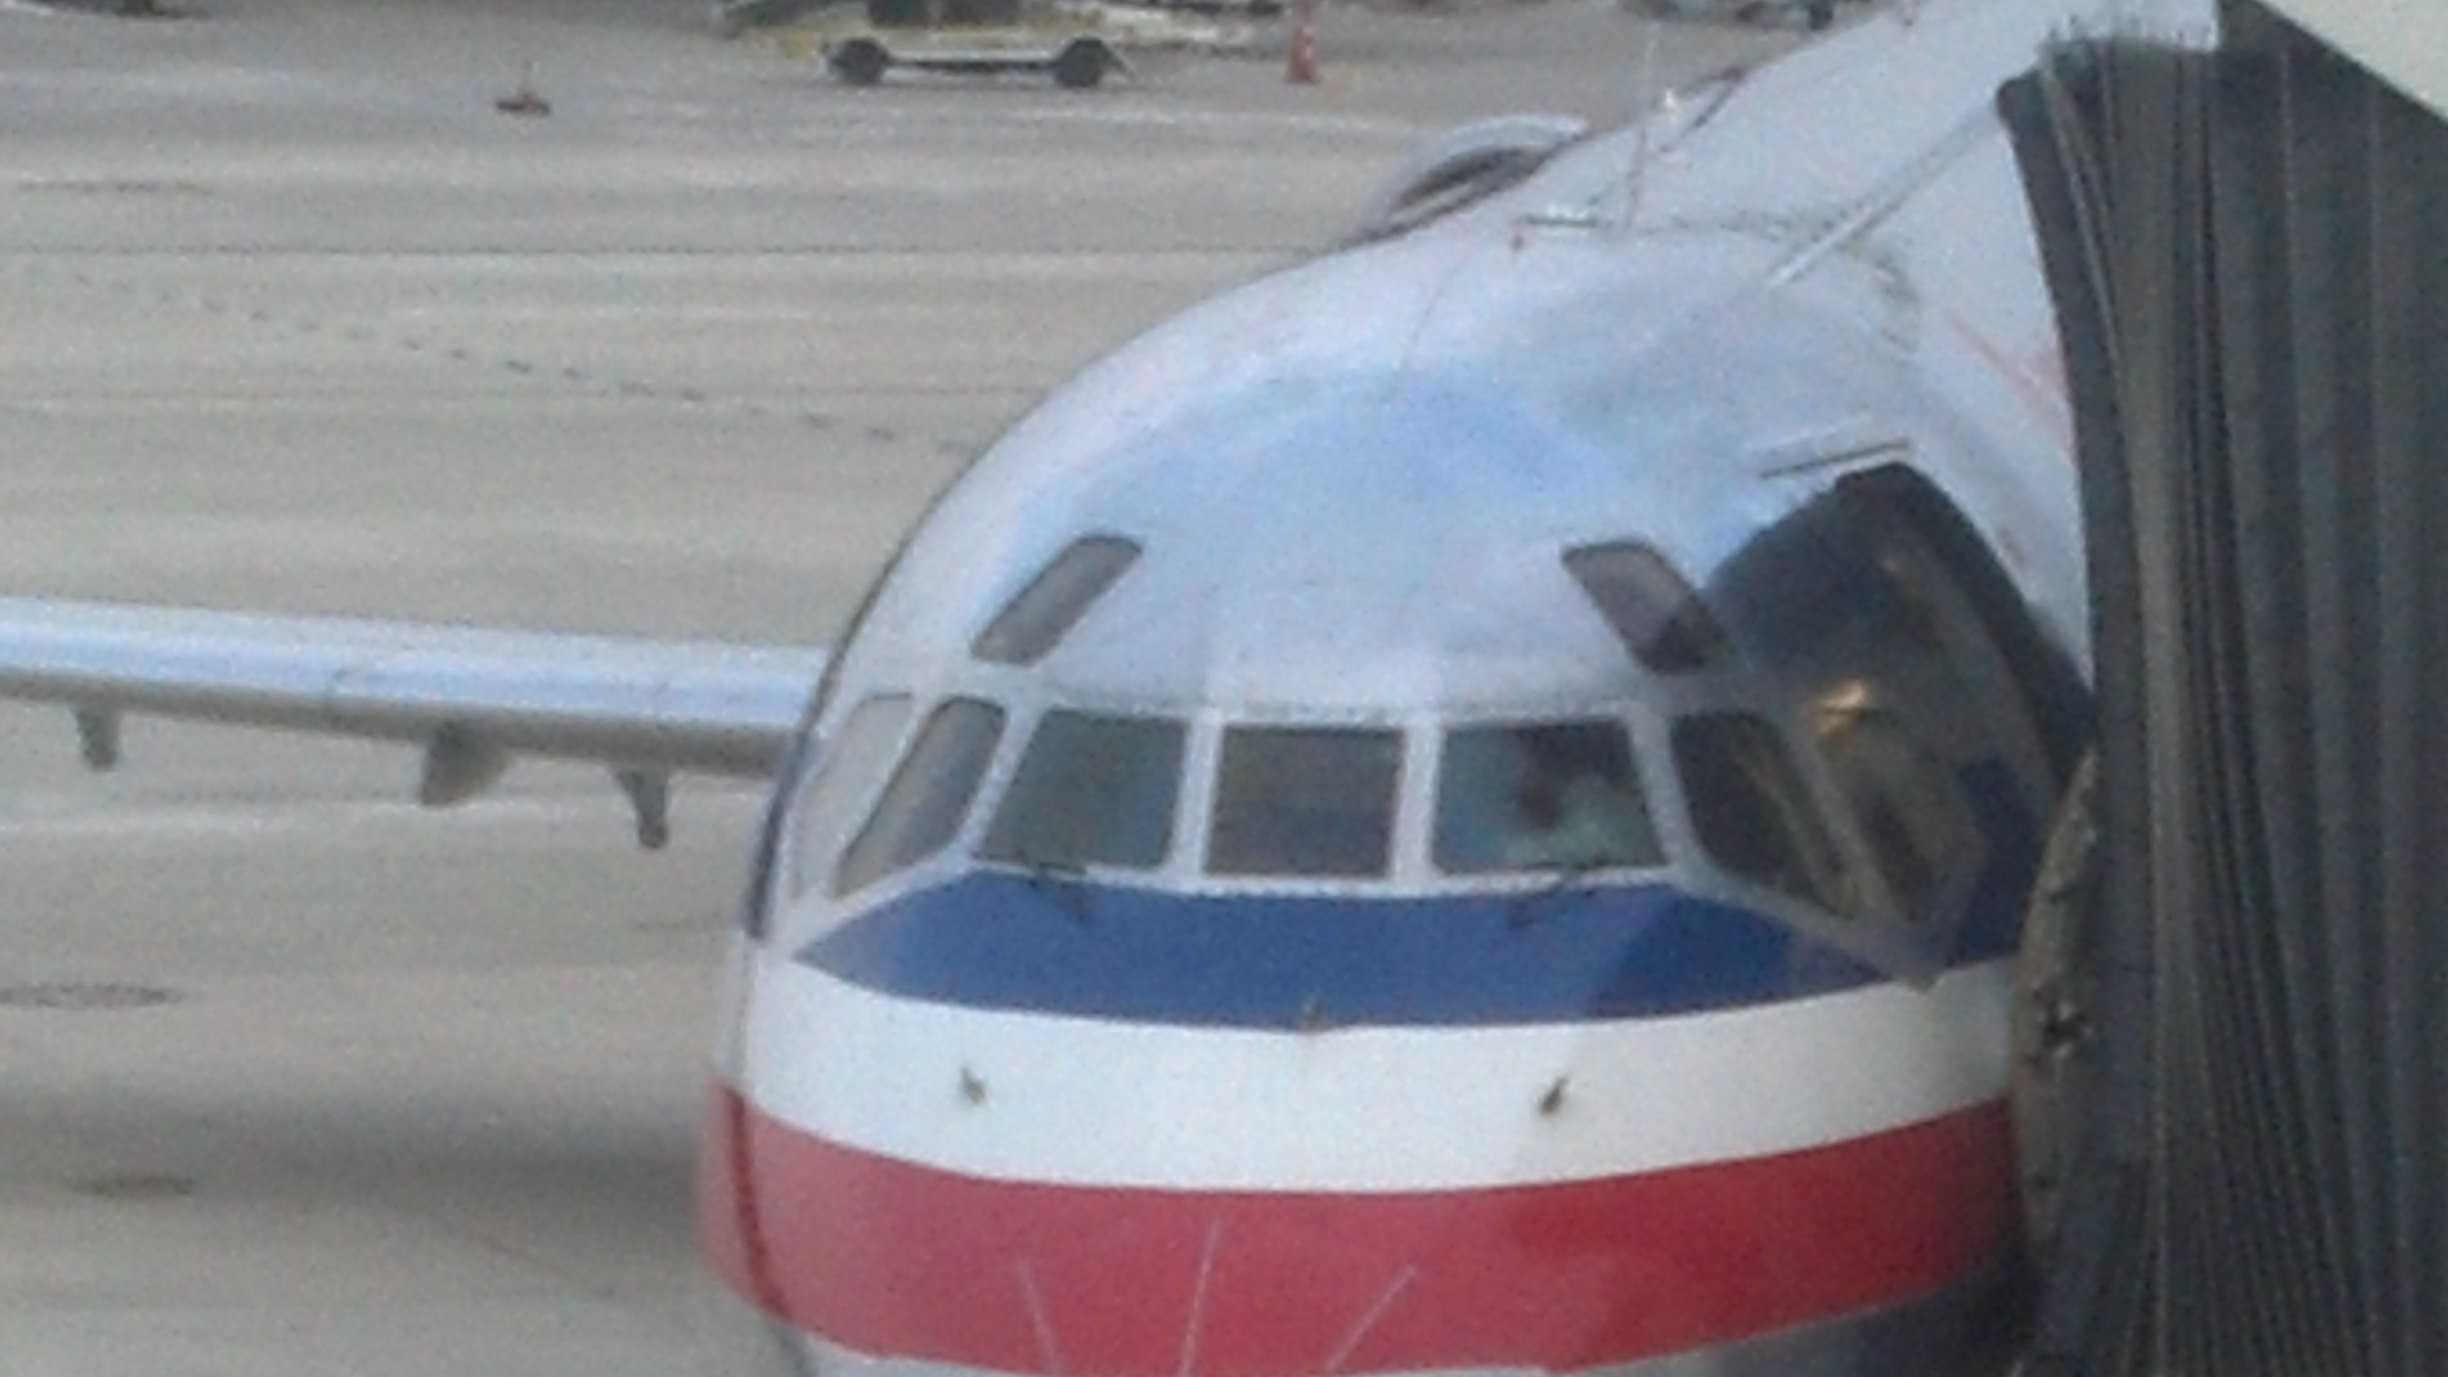 Tow vehicle strikes plane at BWI